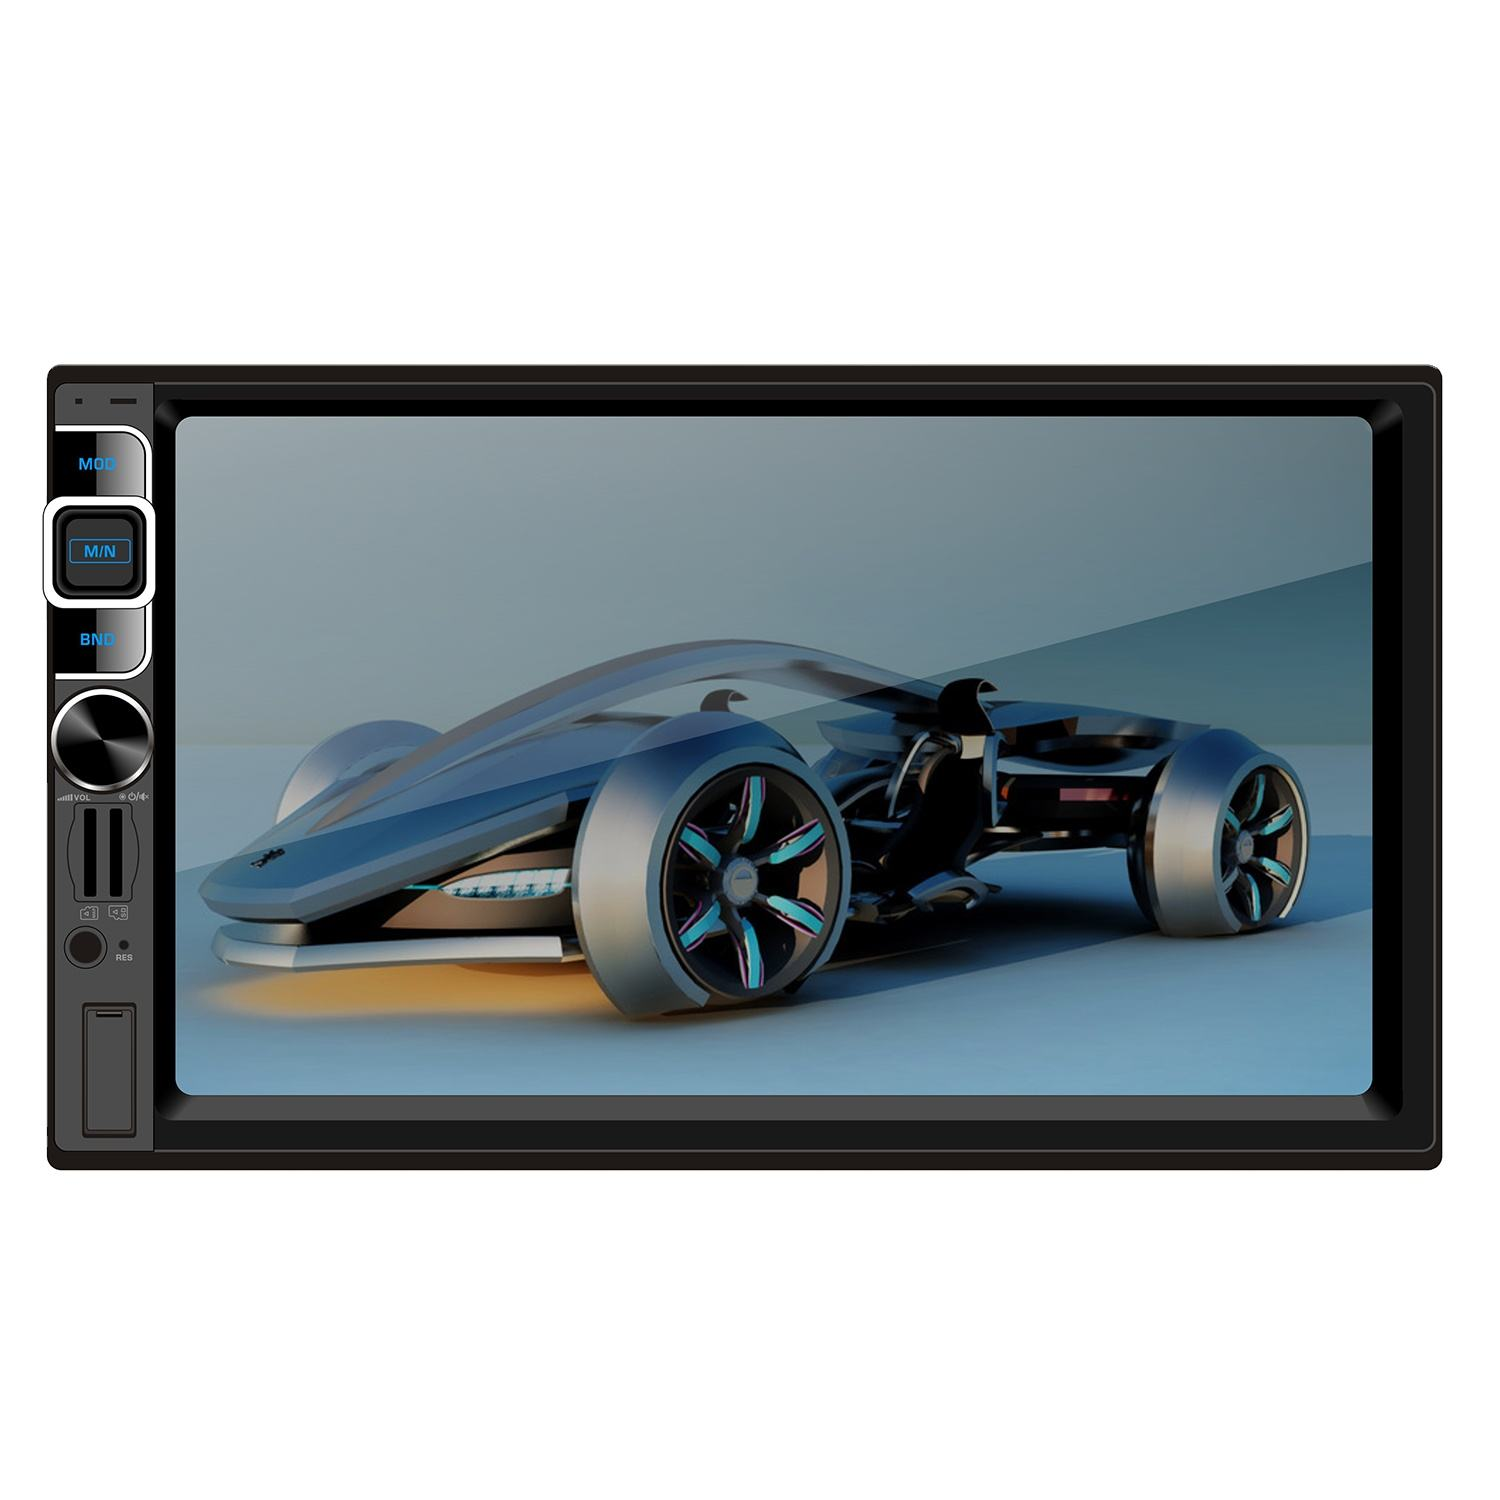 Batch Groothandel Hoge Kwaliteit Flat Panel Display Autoradio 2020 Kosten Mini Truck <span class=keywords><strong>Draagbare</strong></span> Tv